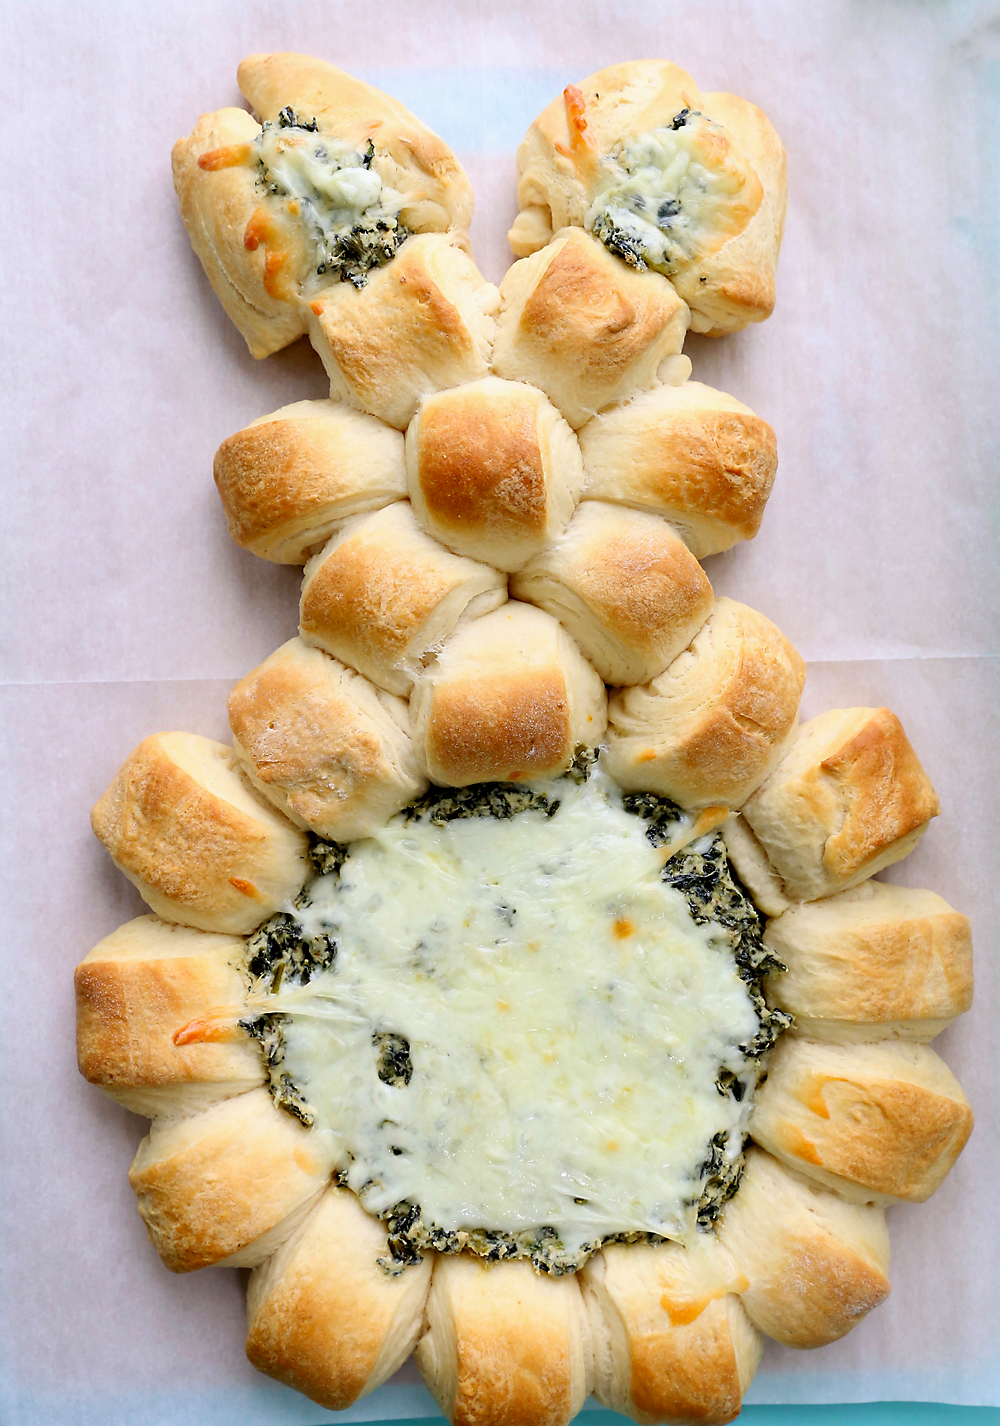 Easter Bunny spinach dip | This super easy Easter appetizer is made with refrigerated crescent dough and creamy homemade spinach dip.